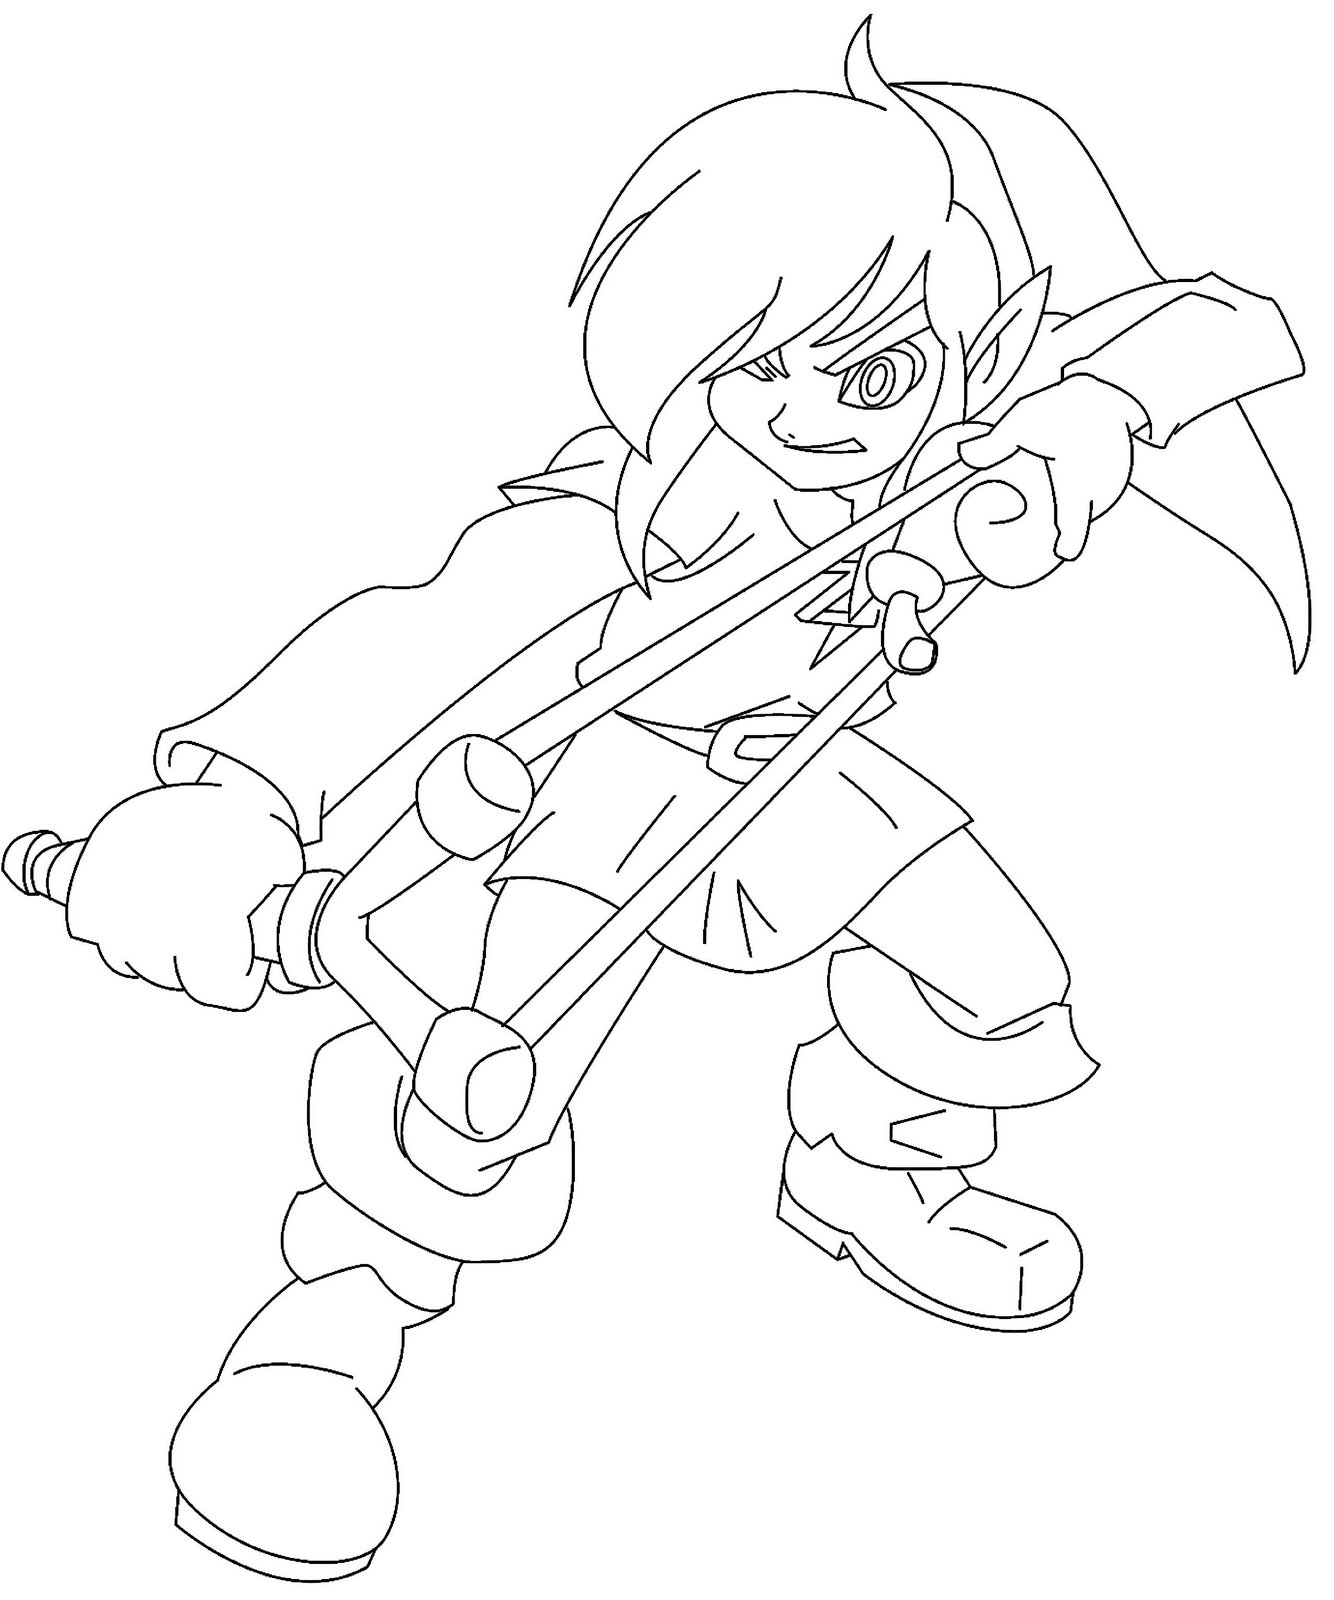 legend of zelda coloring pages - Link Coloring Pages